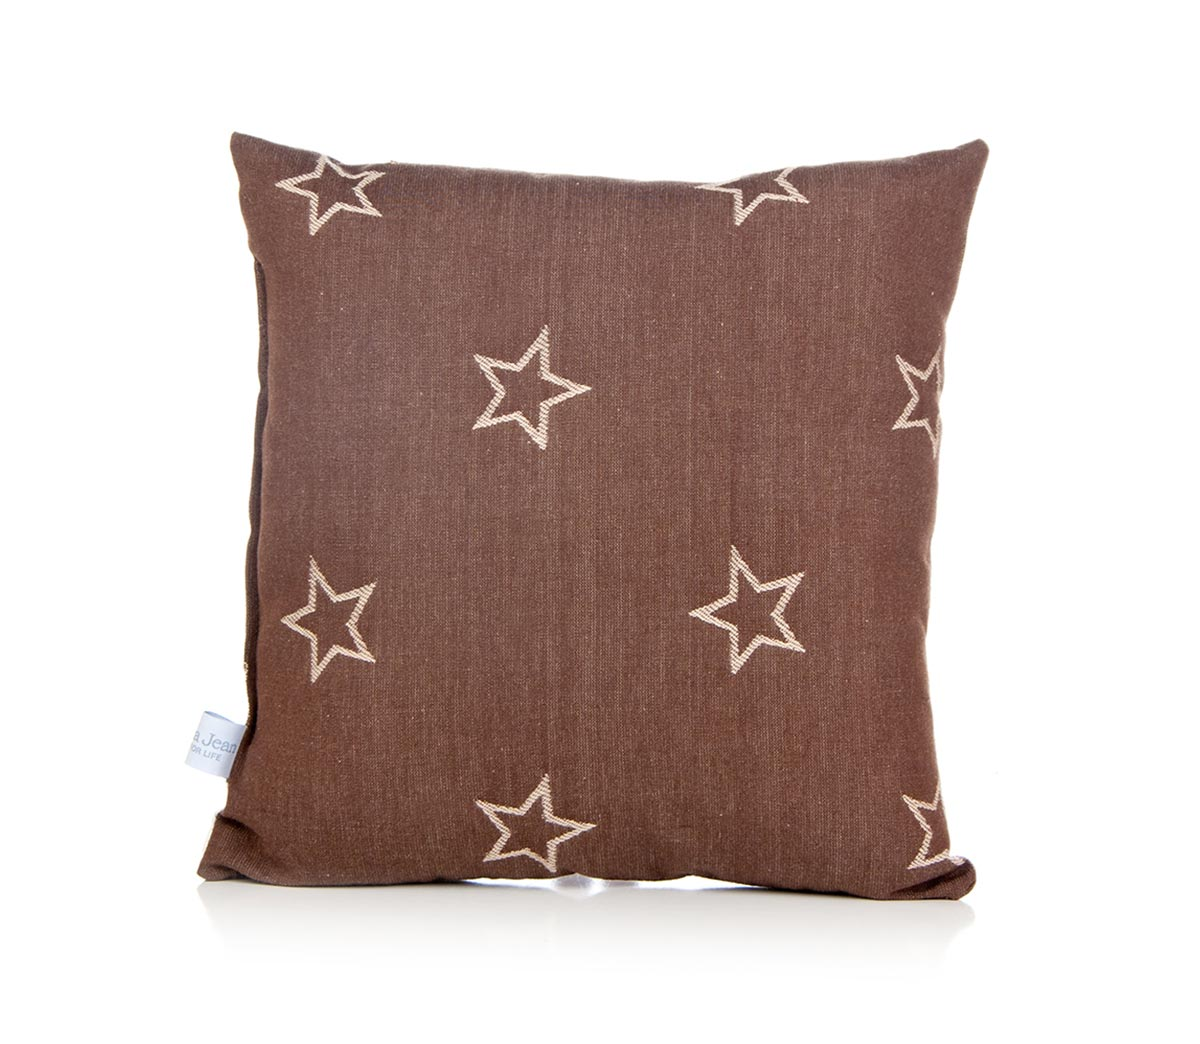 Glenna Jean Camp River Rock Pillow - Brown Stars